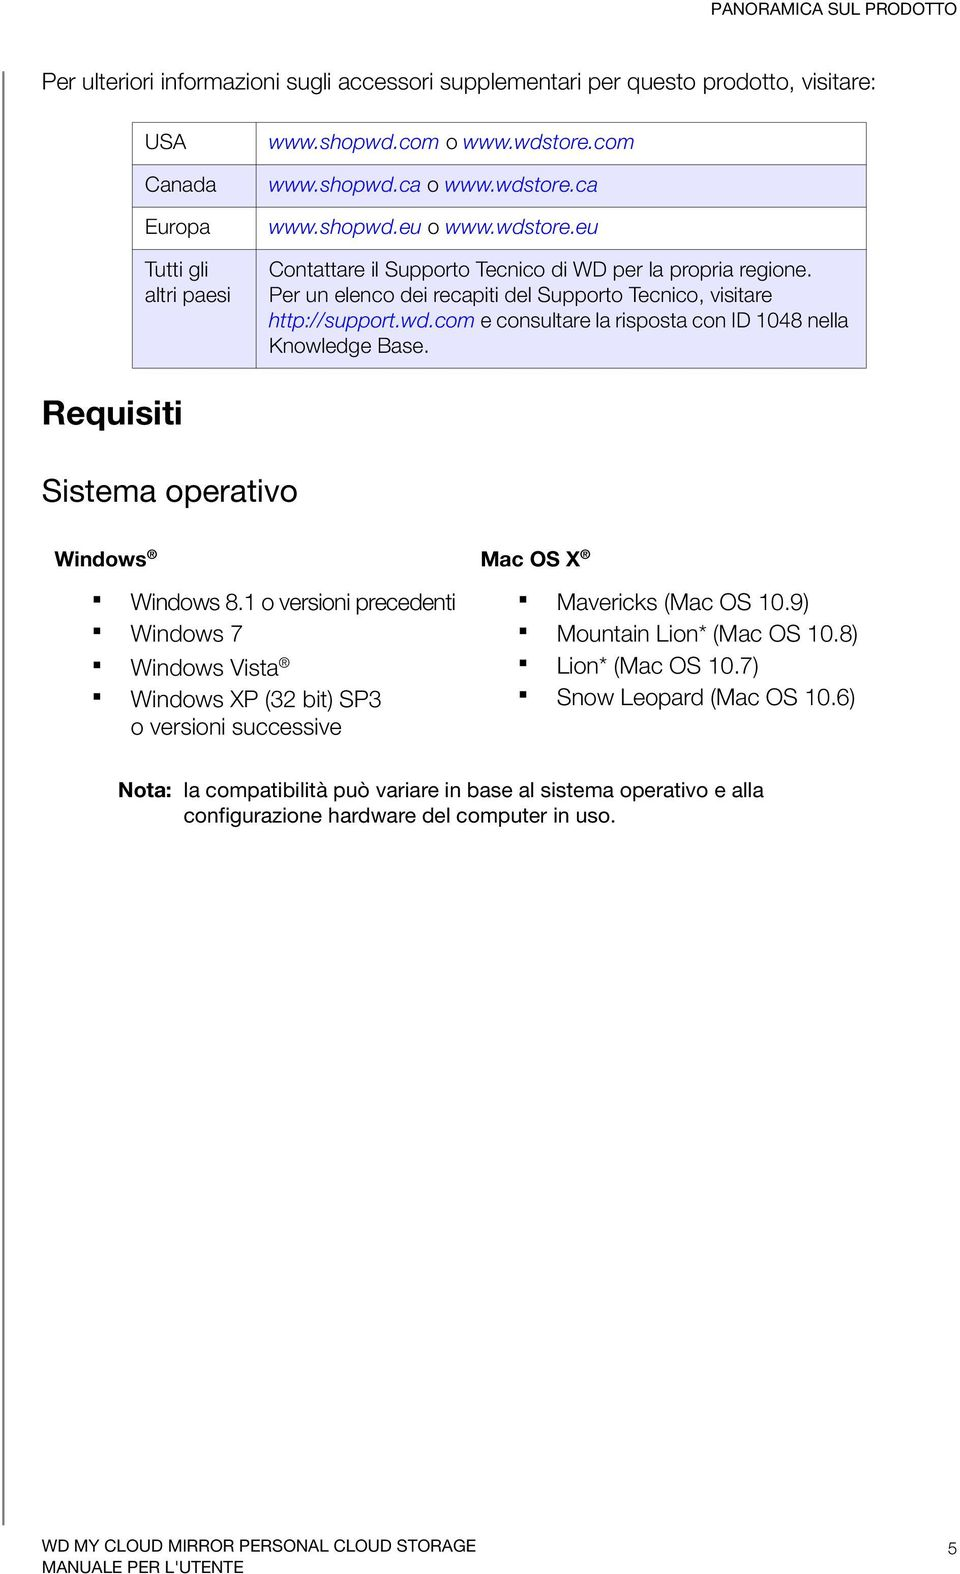 Requisiti Sistema operativo Windows Mac OS X Windows 8.1 o versioni precedenti Windows 7 Windows Vista Windows XP (32 bit) SP3 o versioni successive Mavericks (Mac OS 10.9) Mountain Lion* (Mac OS 10.